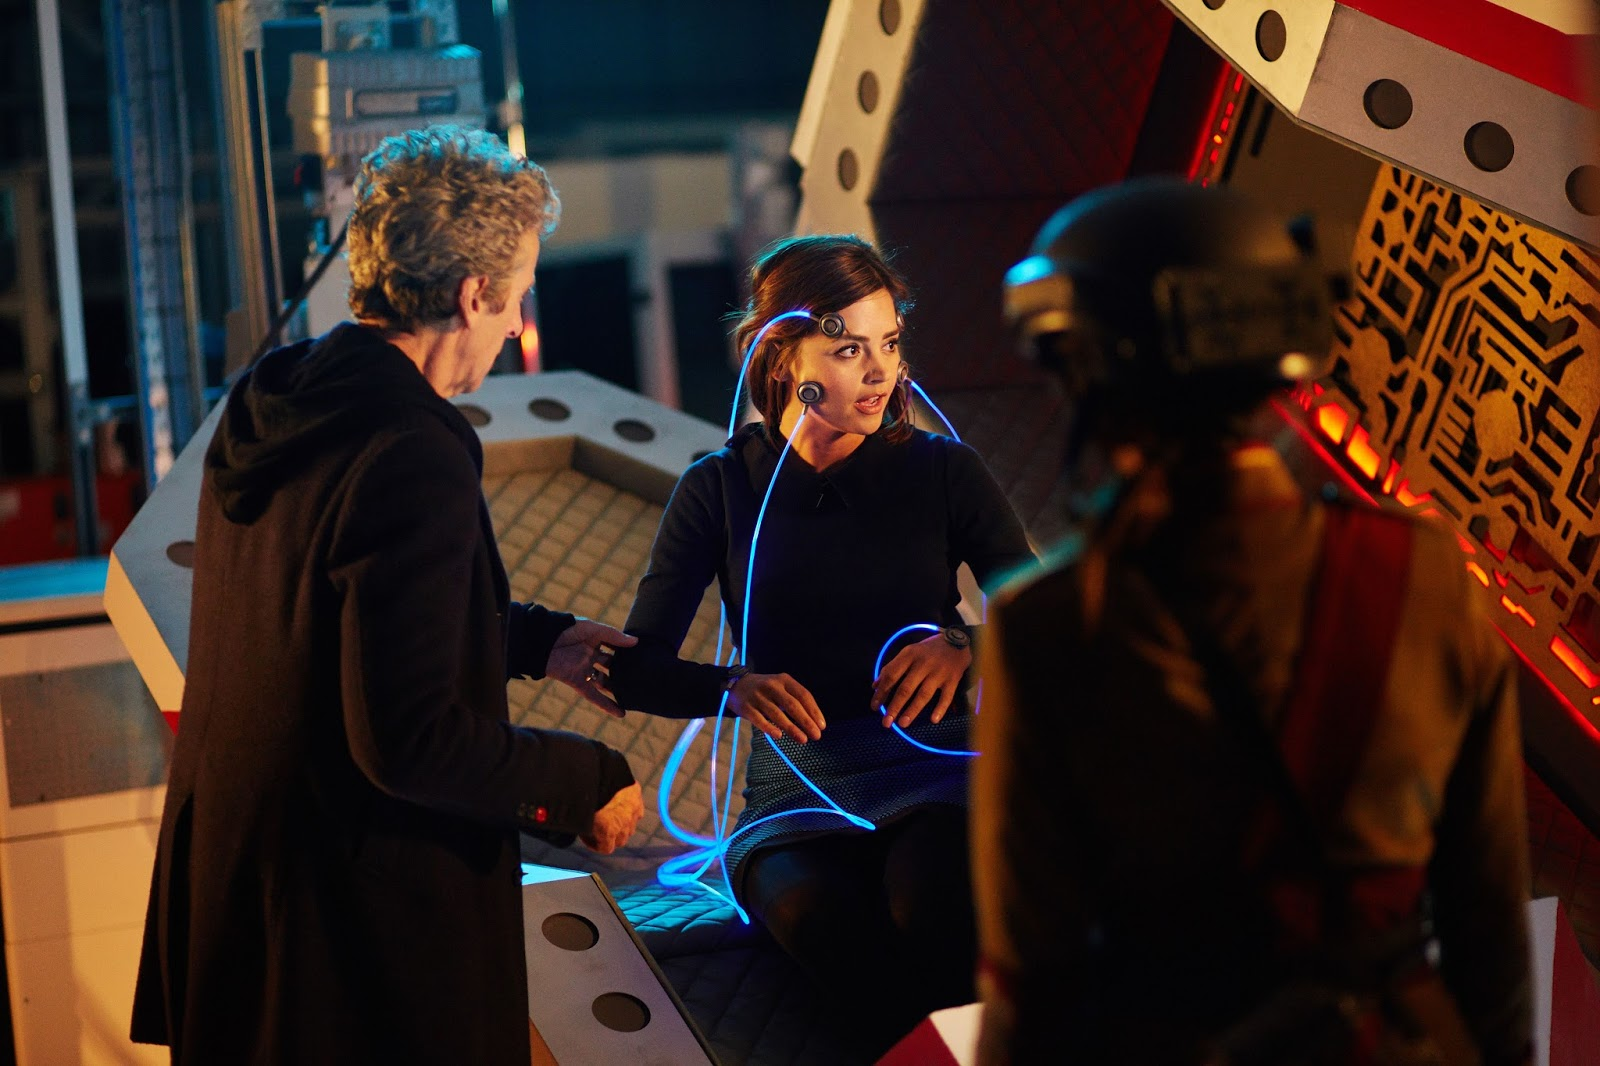 Bs.To/Serie/Doctor Who